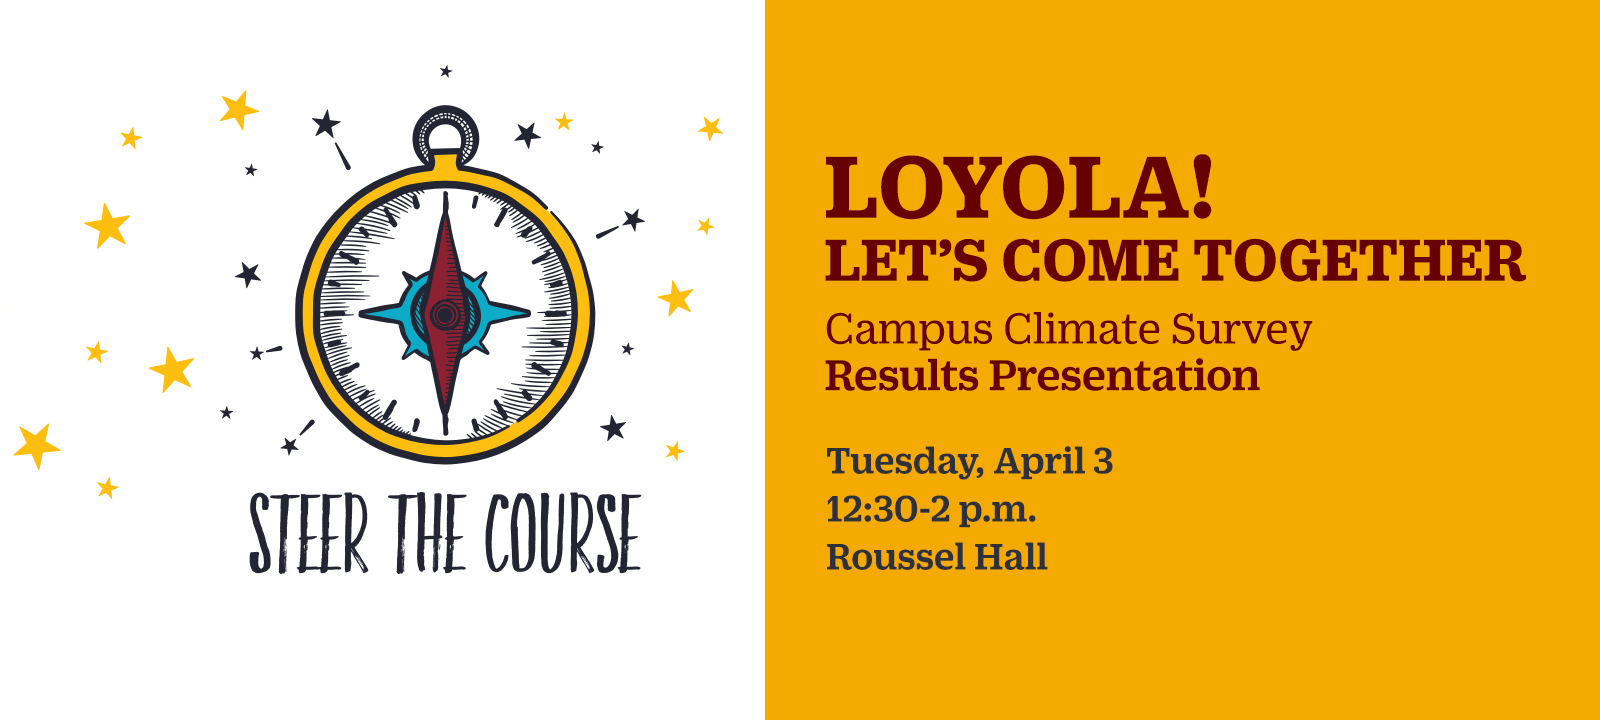 Come and hear what community members have to say about what it's like to learn, work and live at Loyola